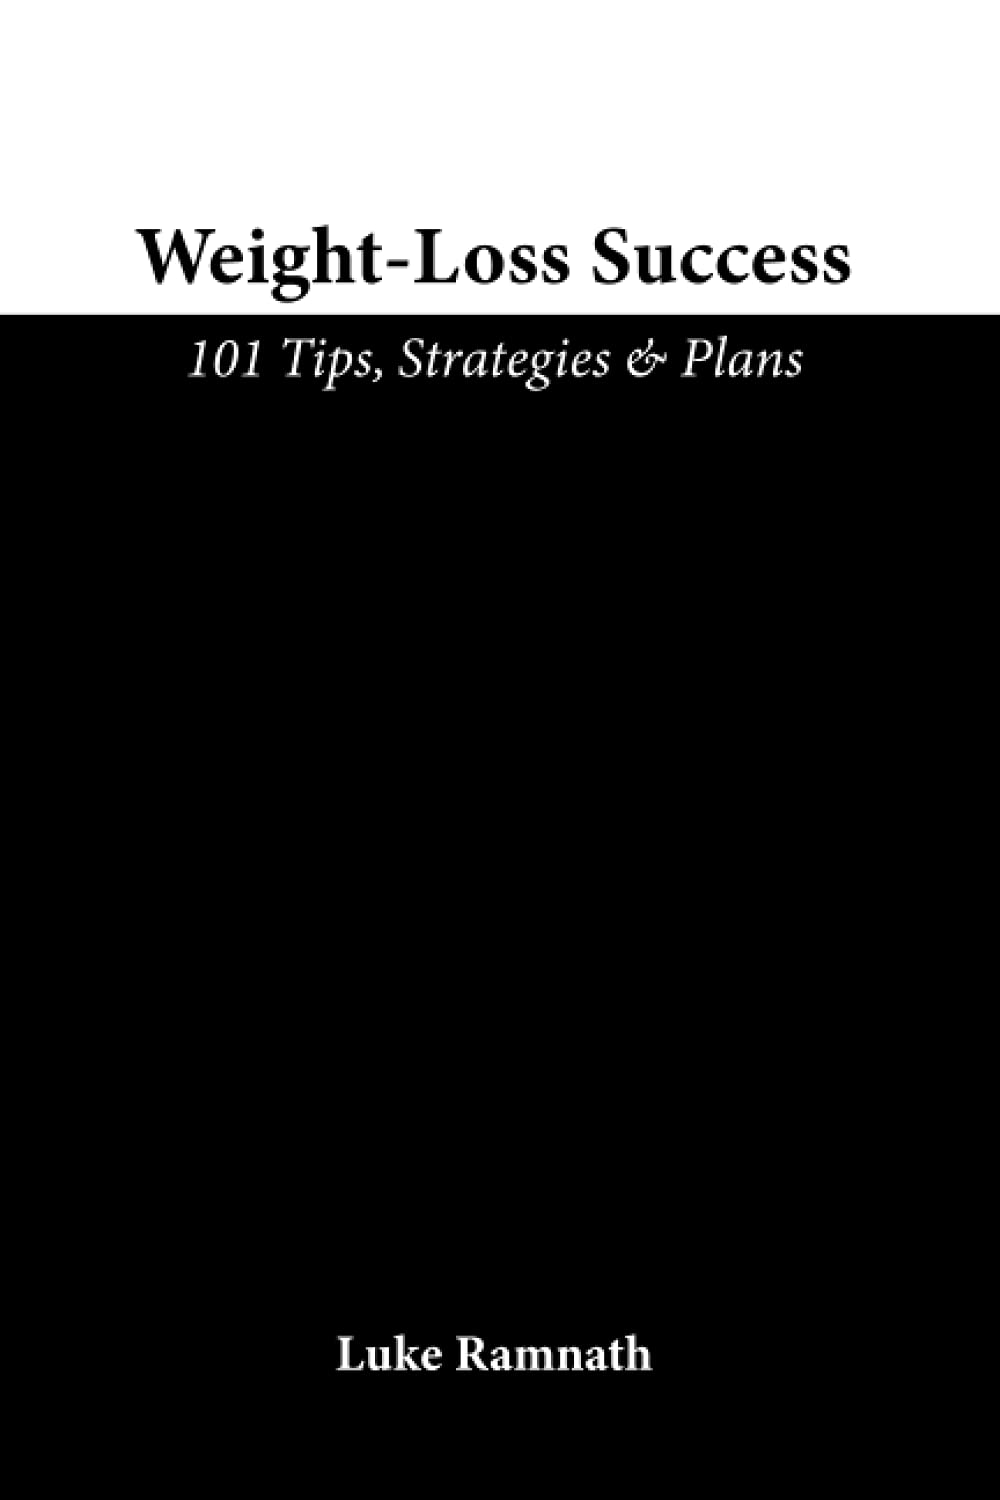 Weight-Loss Success: 101 Tips, Strategies & Plans